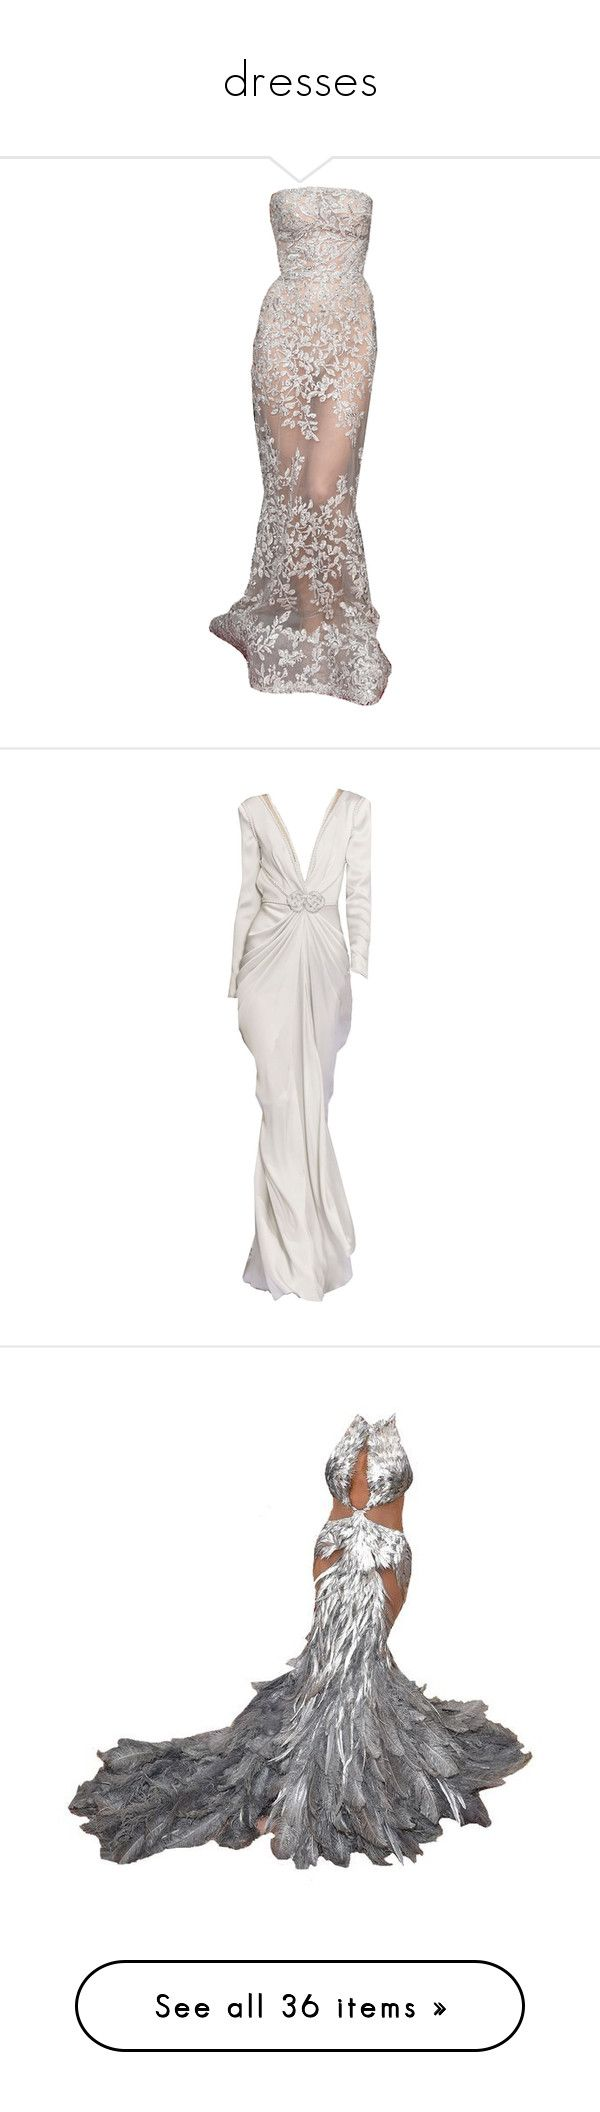 """dresses"" by trillest-princesss ❤ liked on Polyvore featuring dresses, gowns, long dresses, brown evening dress, brown gown, brown dresses, brown evening gowns, white ball gowns, white evening dresses and white dresses"